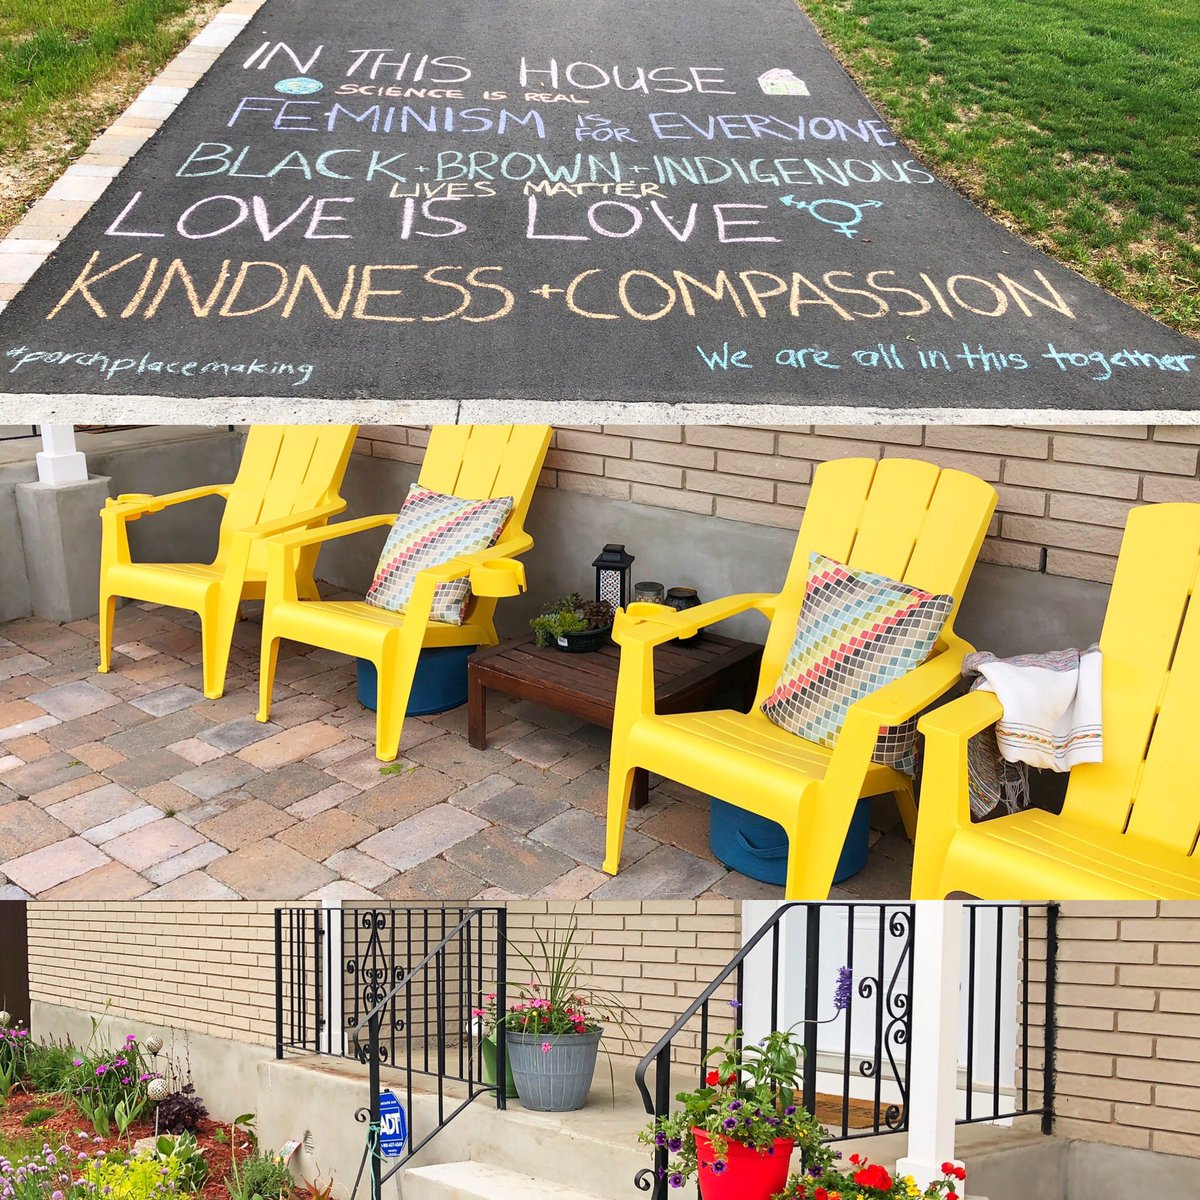 My attempt at beautifying the front of my home for #porchplacemaking week.   If you can read those words and not start arguing with me, you are welcome on my porch. Six feet apart, of course. https://t.co/oI8tx80axA